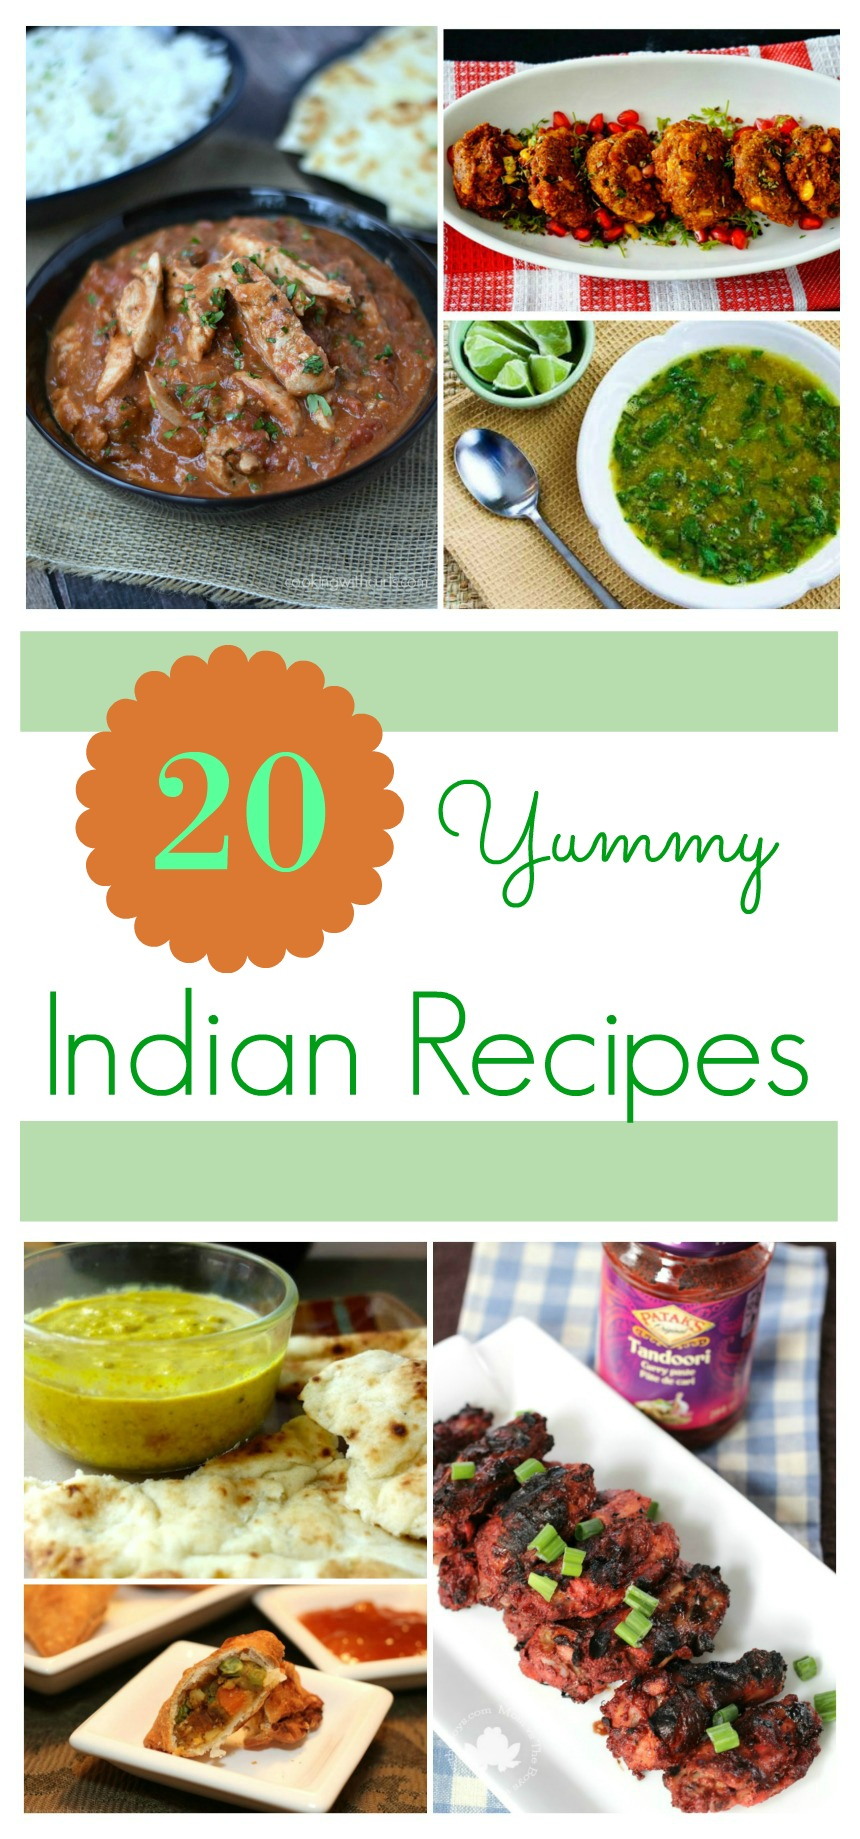 Do you love Indian food? Forget takeout and learn to make Indian at home with these 20 Yummy Indian Recipes here!